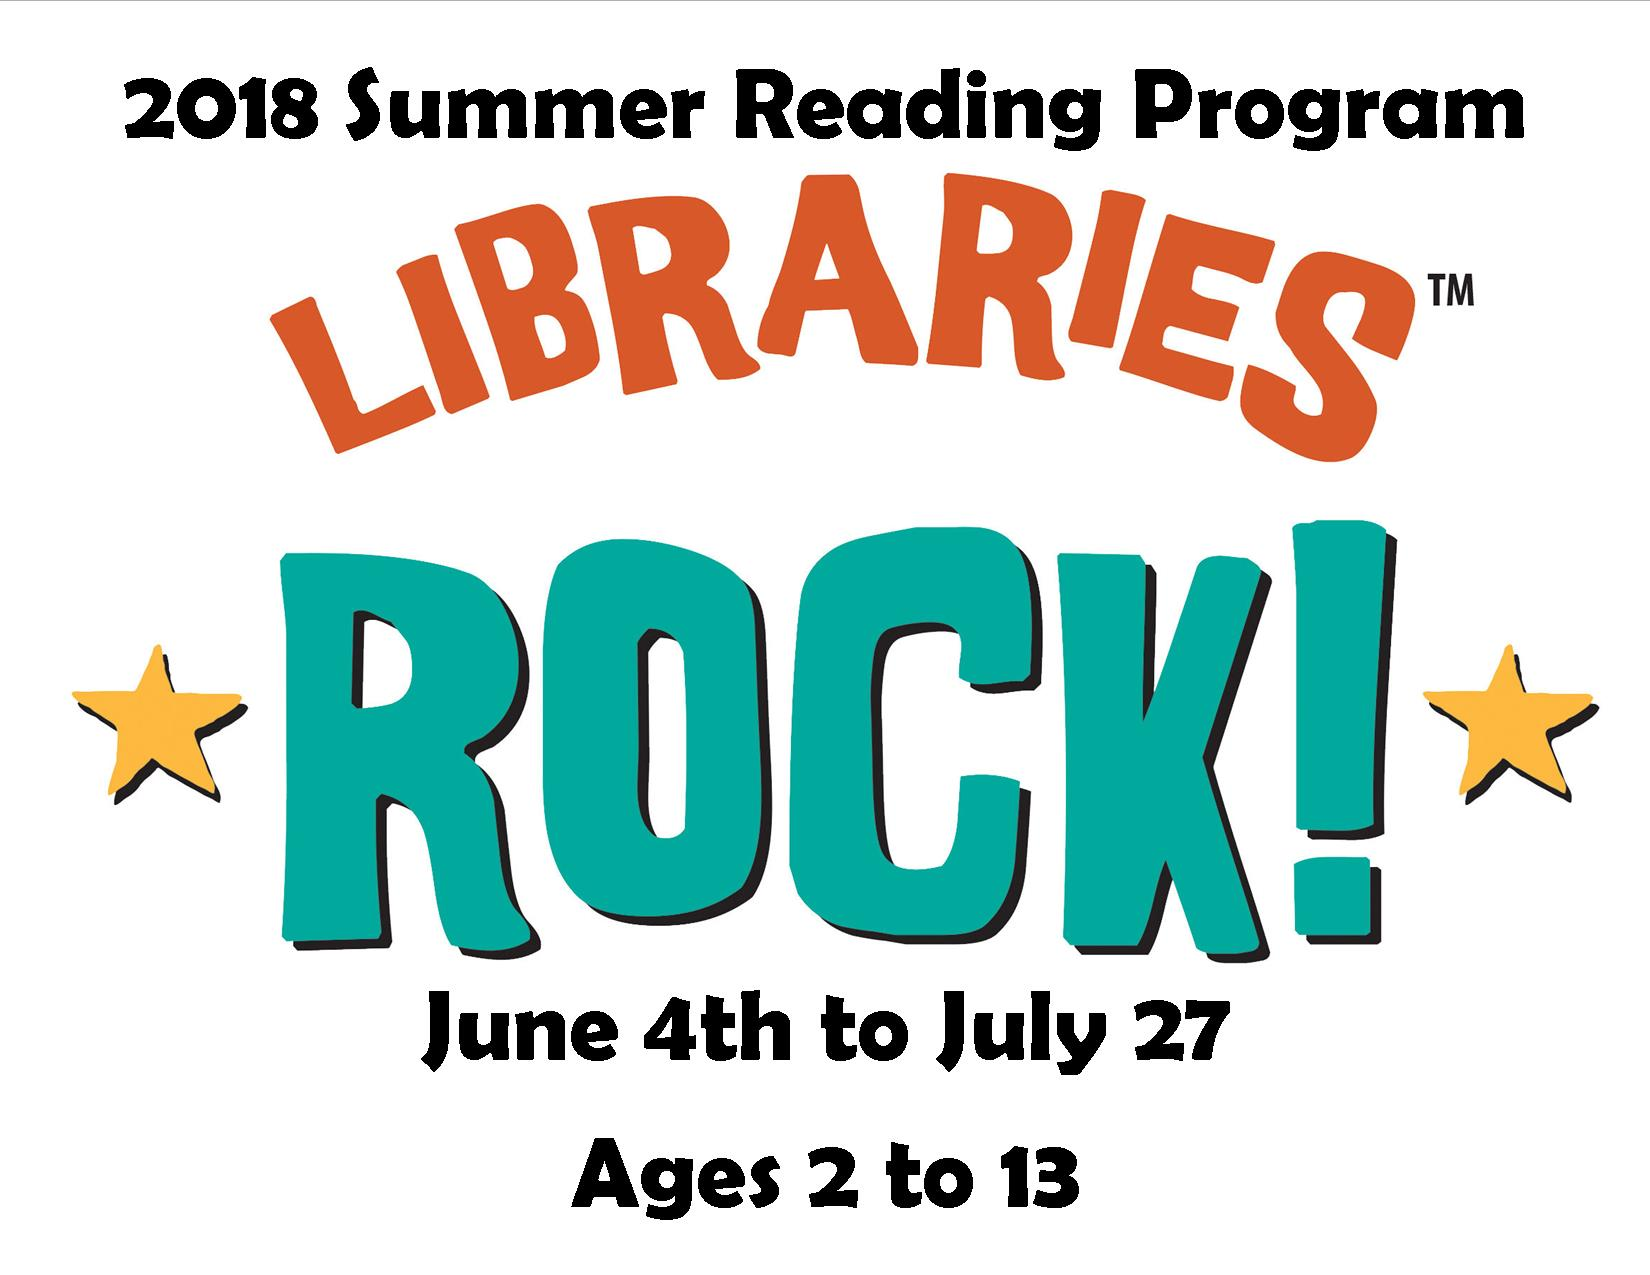 First Day of Summer Reading at the Logansport Library @ Logansport-Cass County Public Library